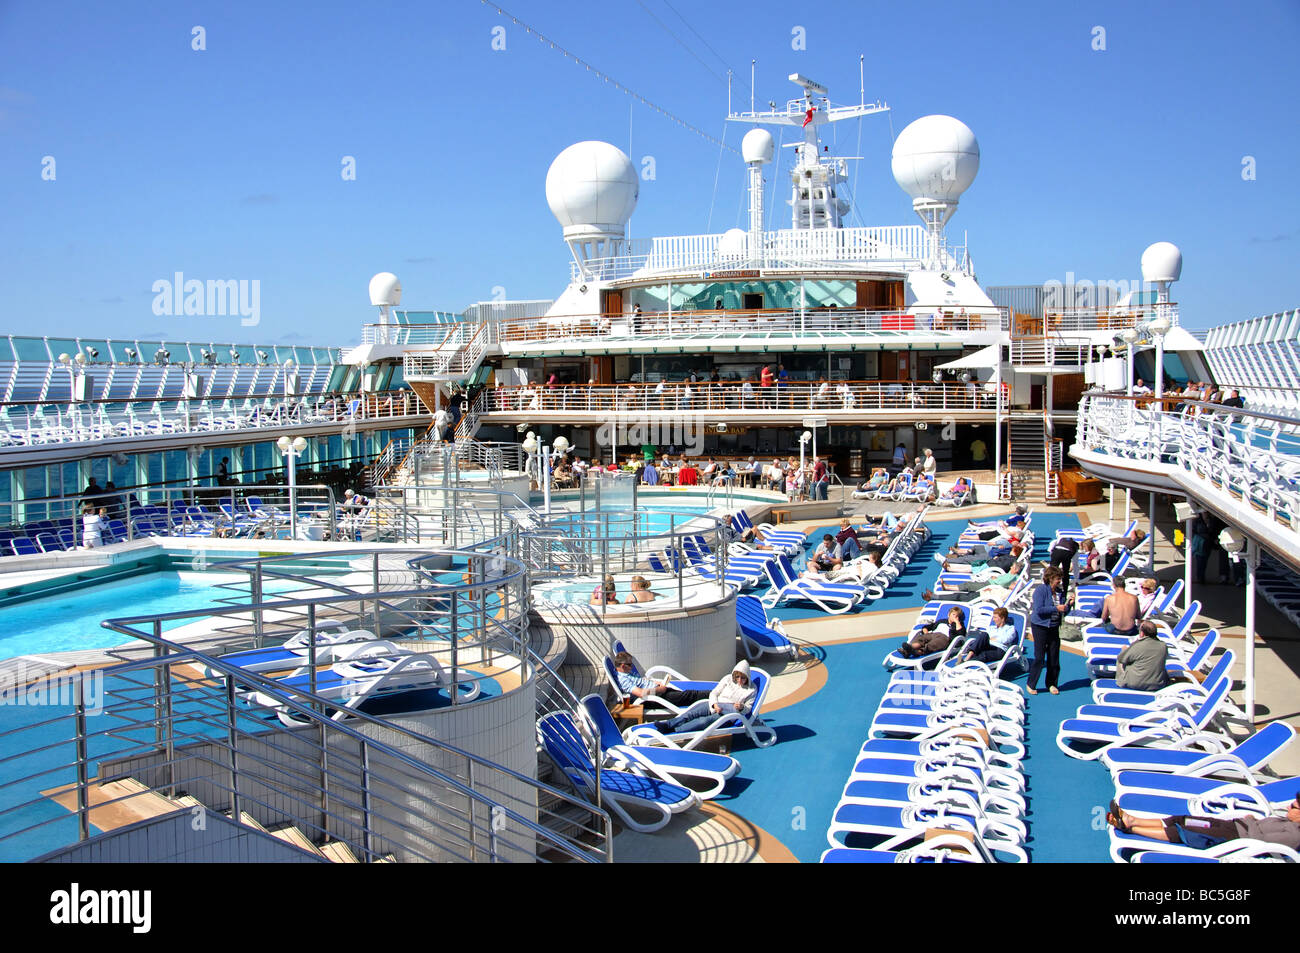 sun deck p o oceana cruise ship north sea europe stock photo